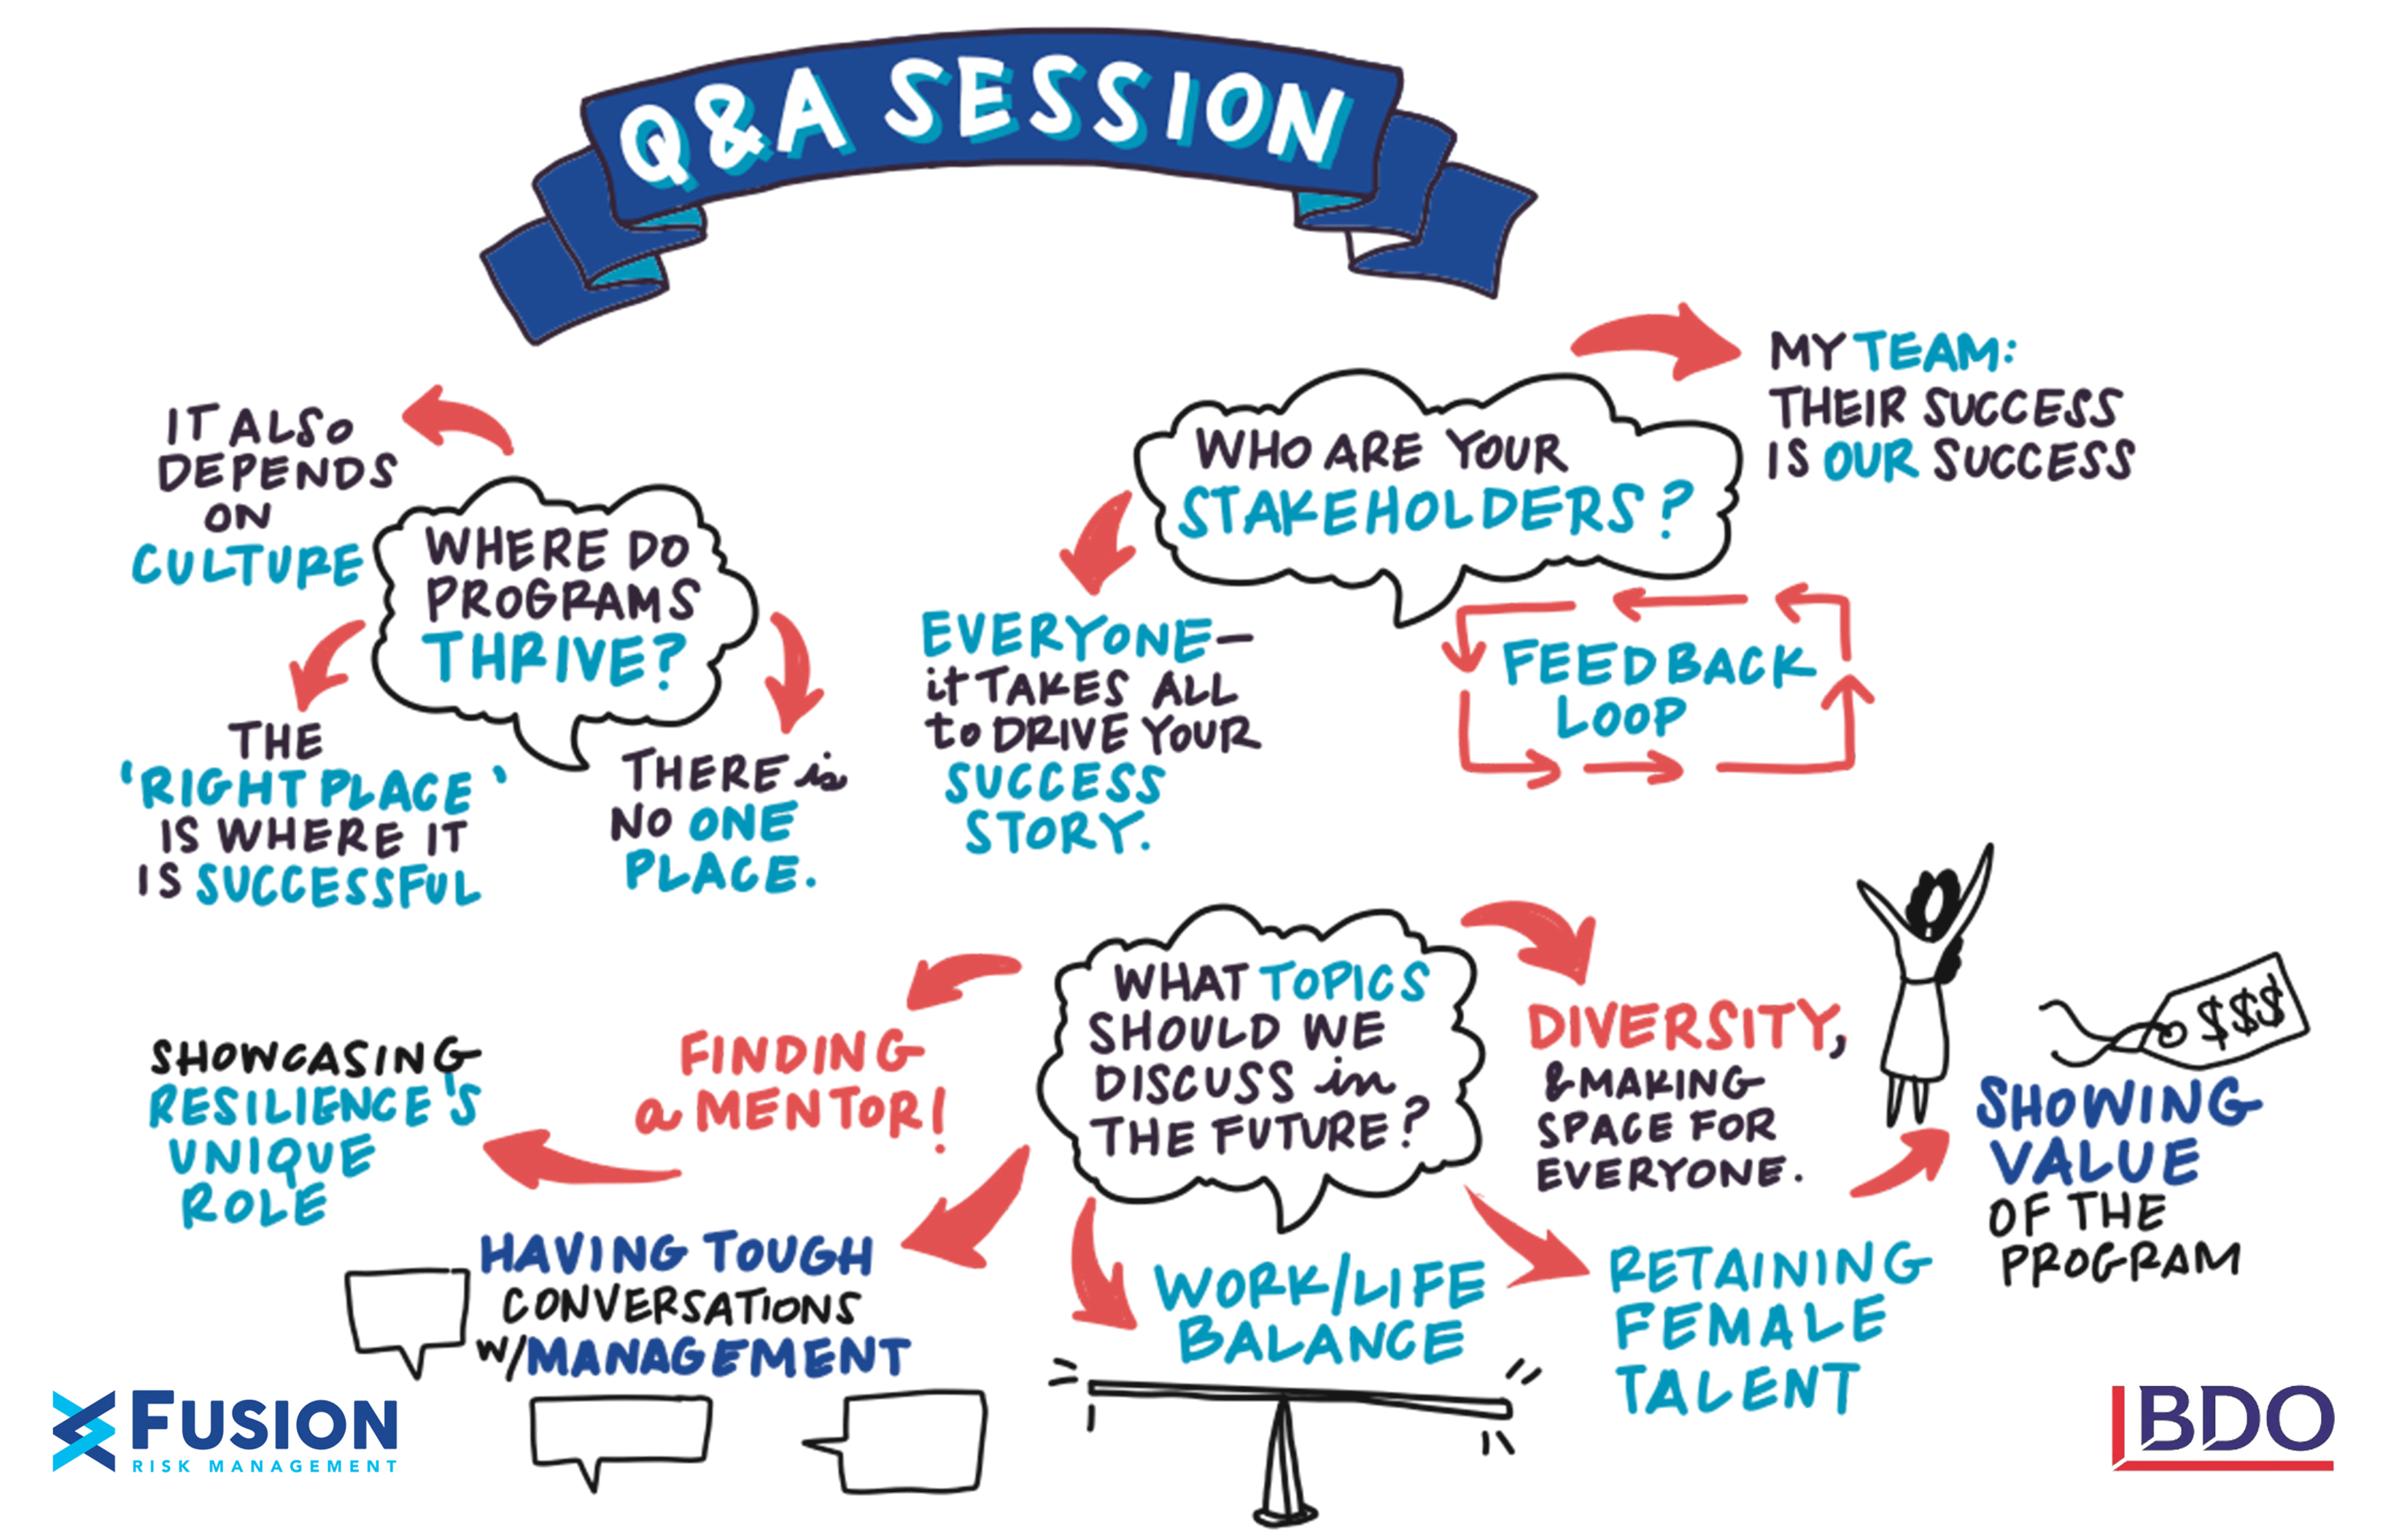 Q&A Session Illustration